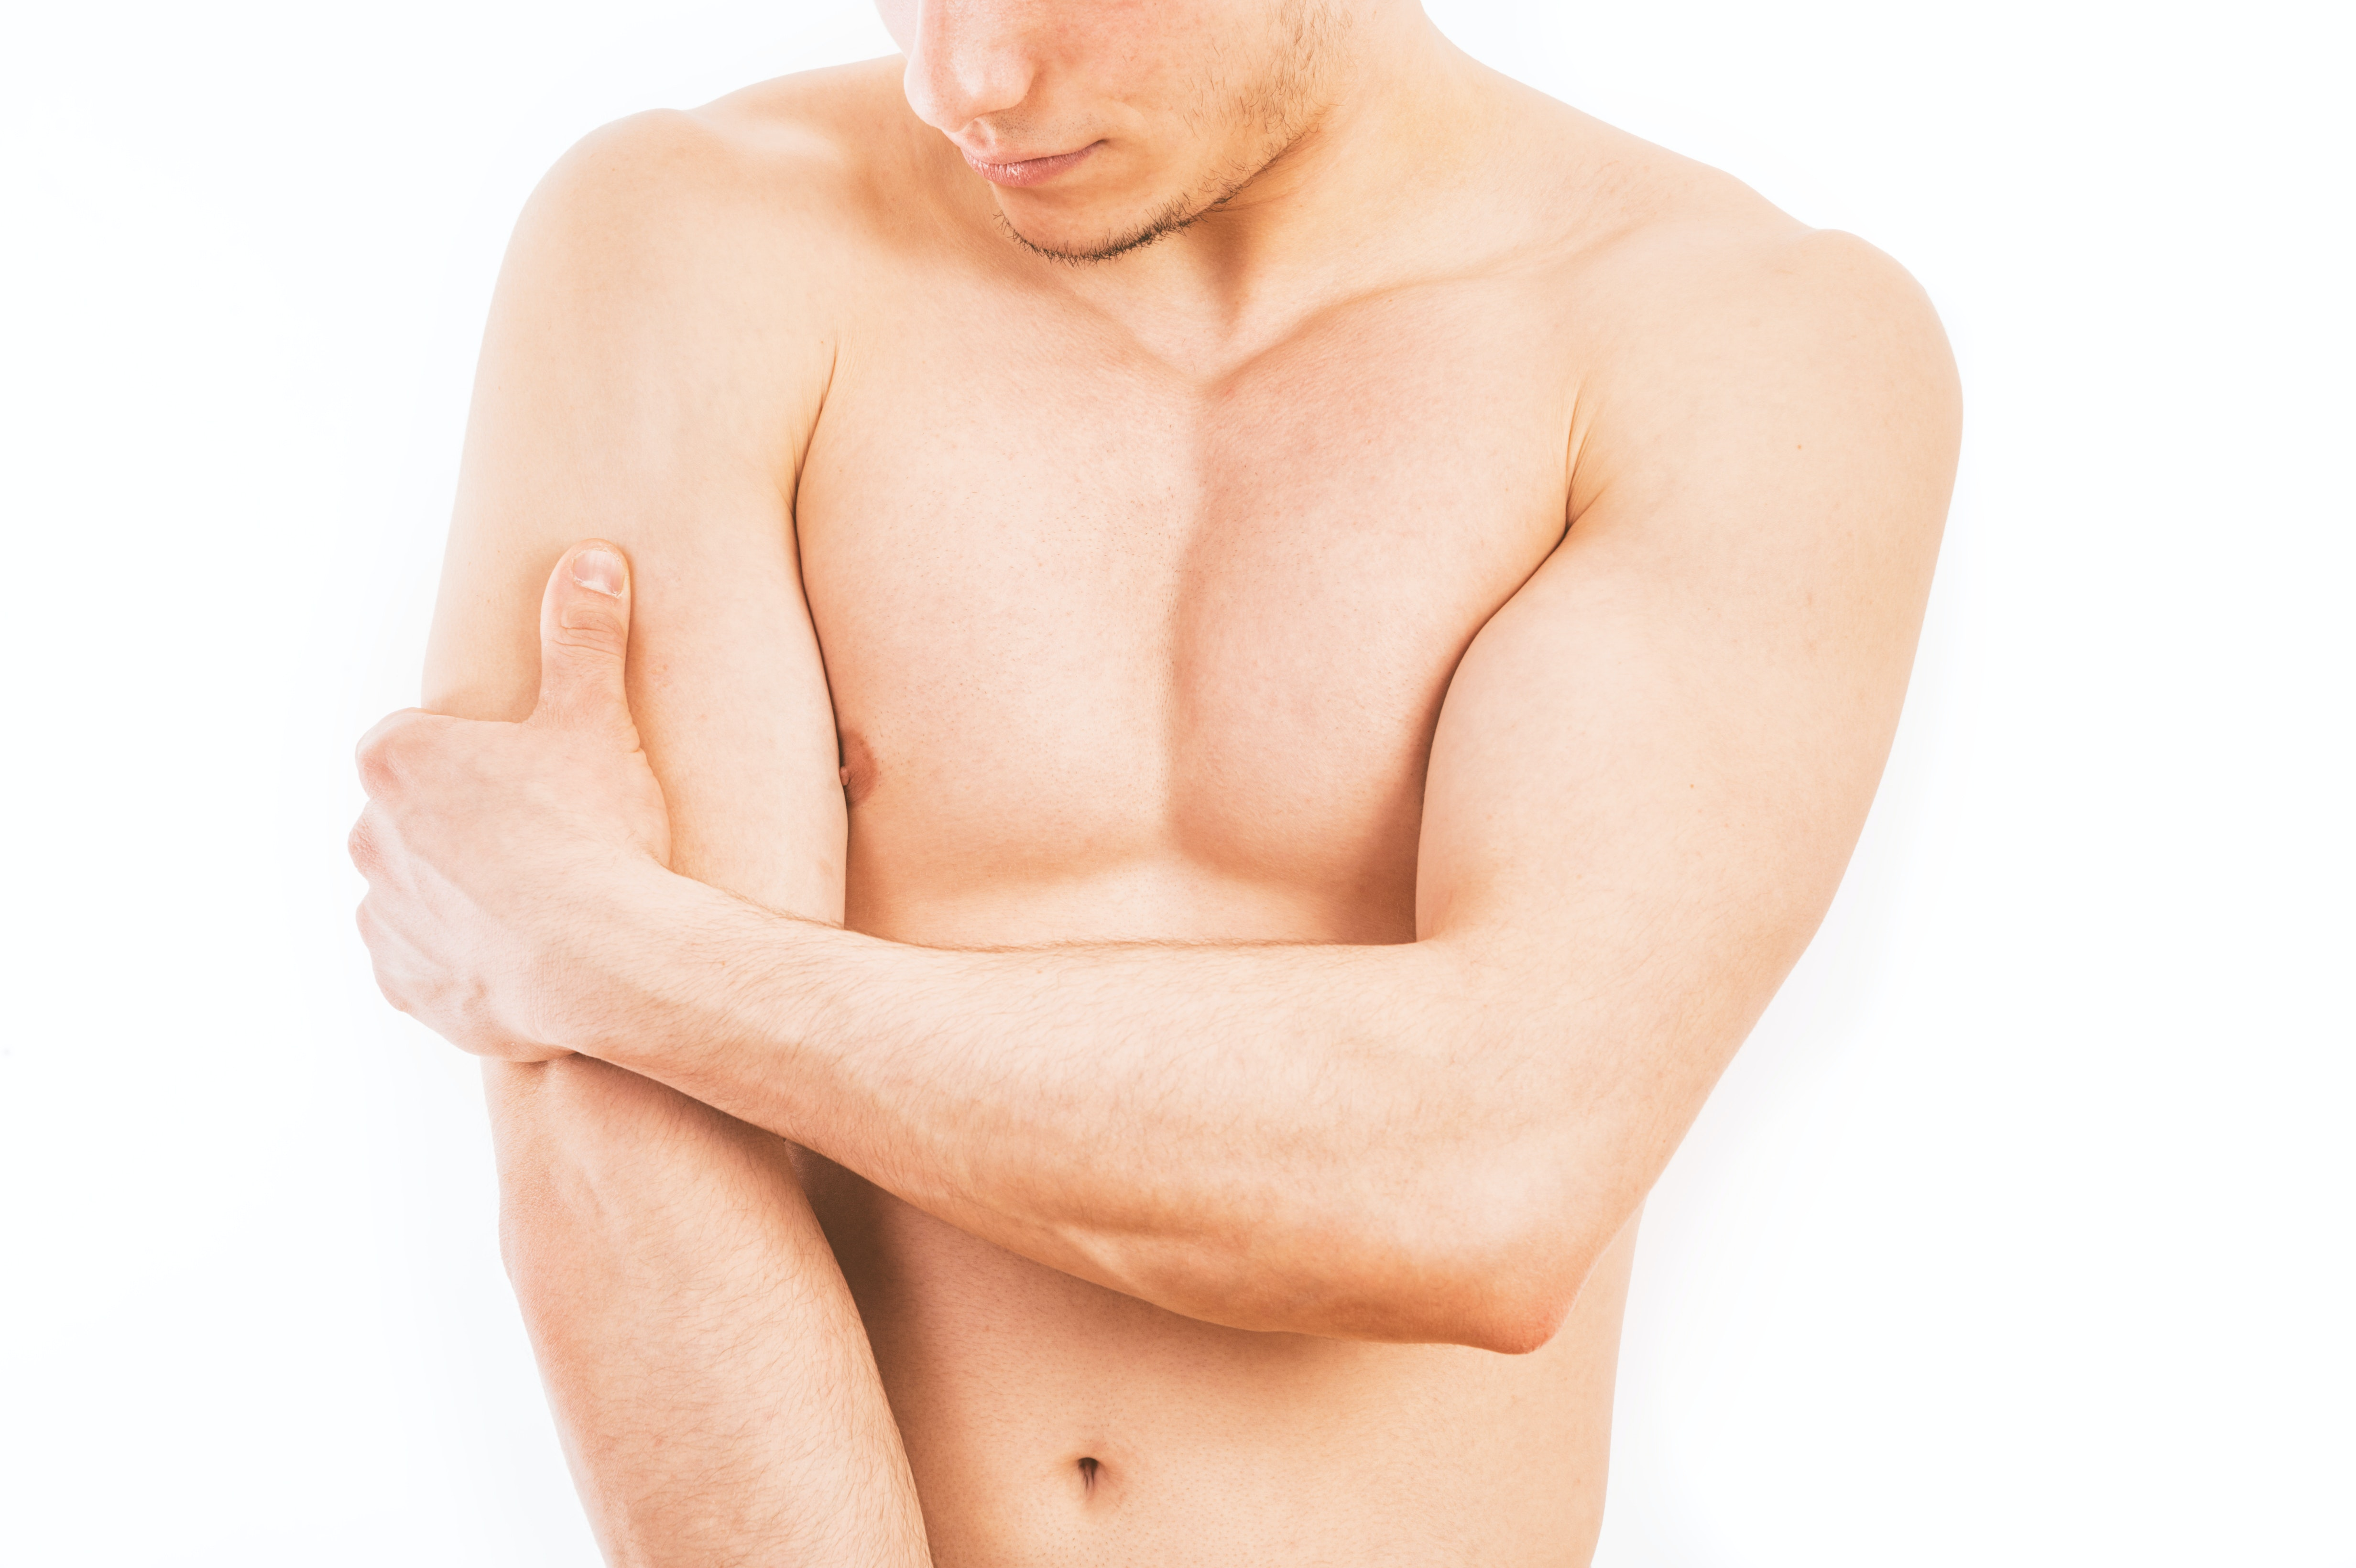 An image depicting a person suffering from tricep pain symptoms